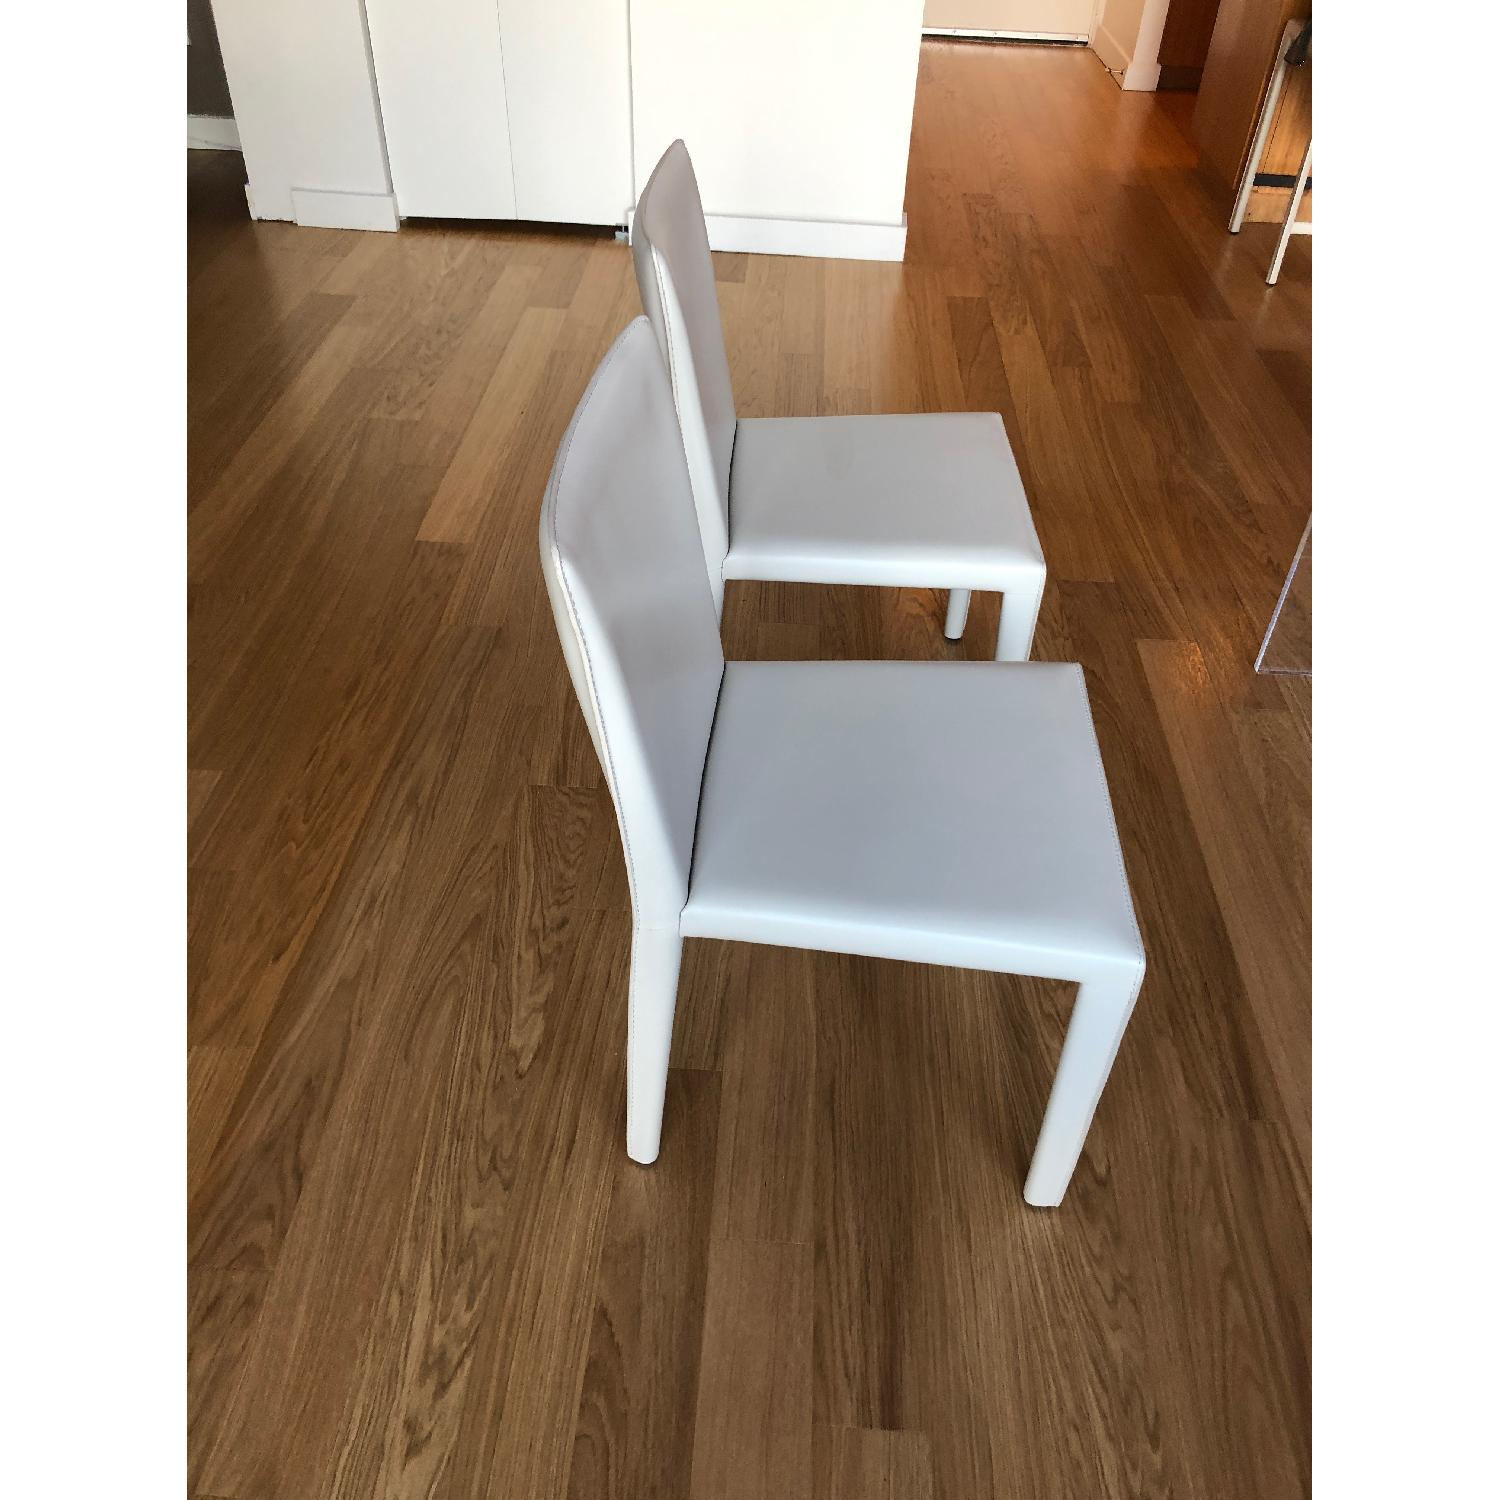 Room & Board Sava Dining Chairs in Ivory Leather-0